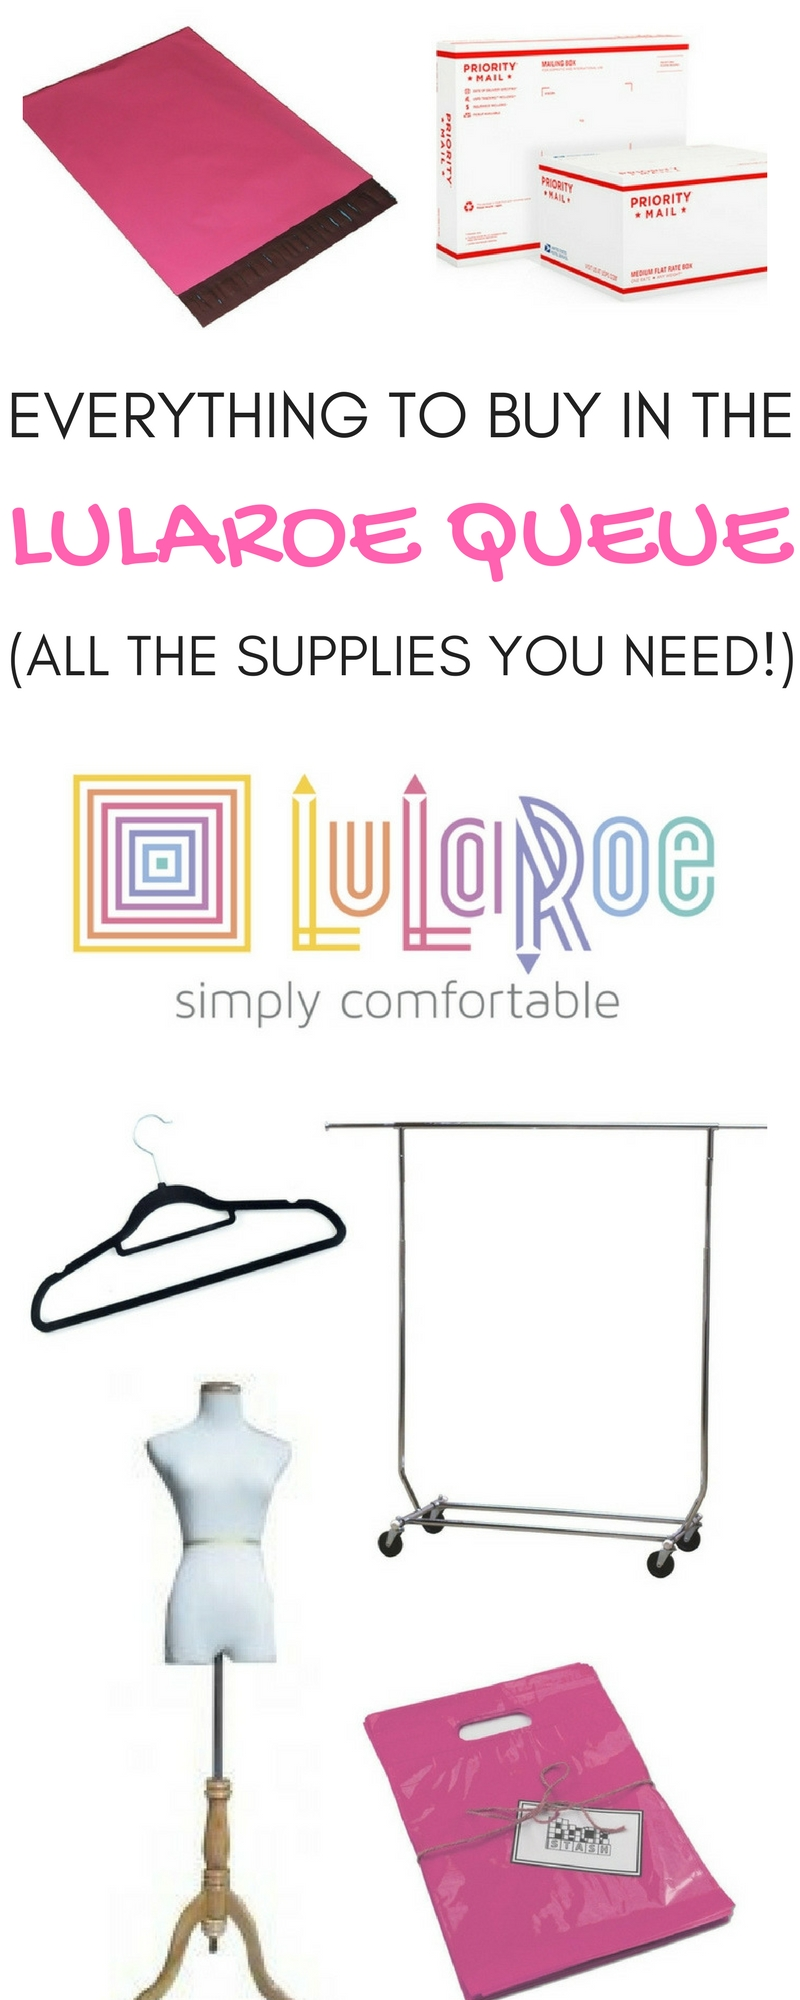 Everything to Buy in the LuLaRoe Queue (All the supplies you need to be a LuLaRoe consultant!)